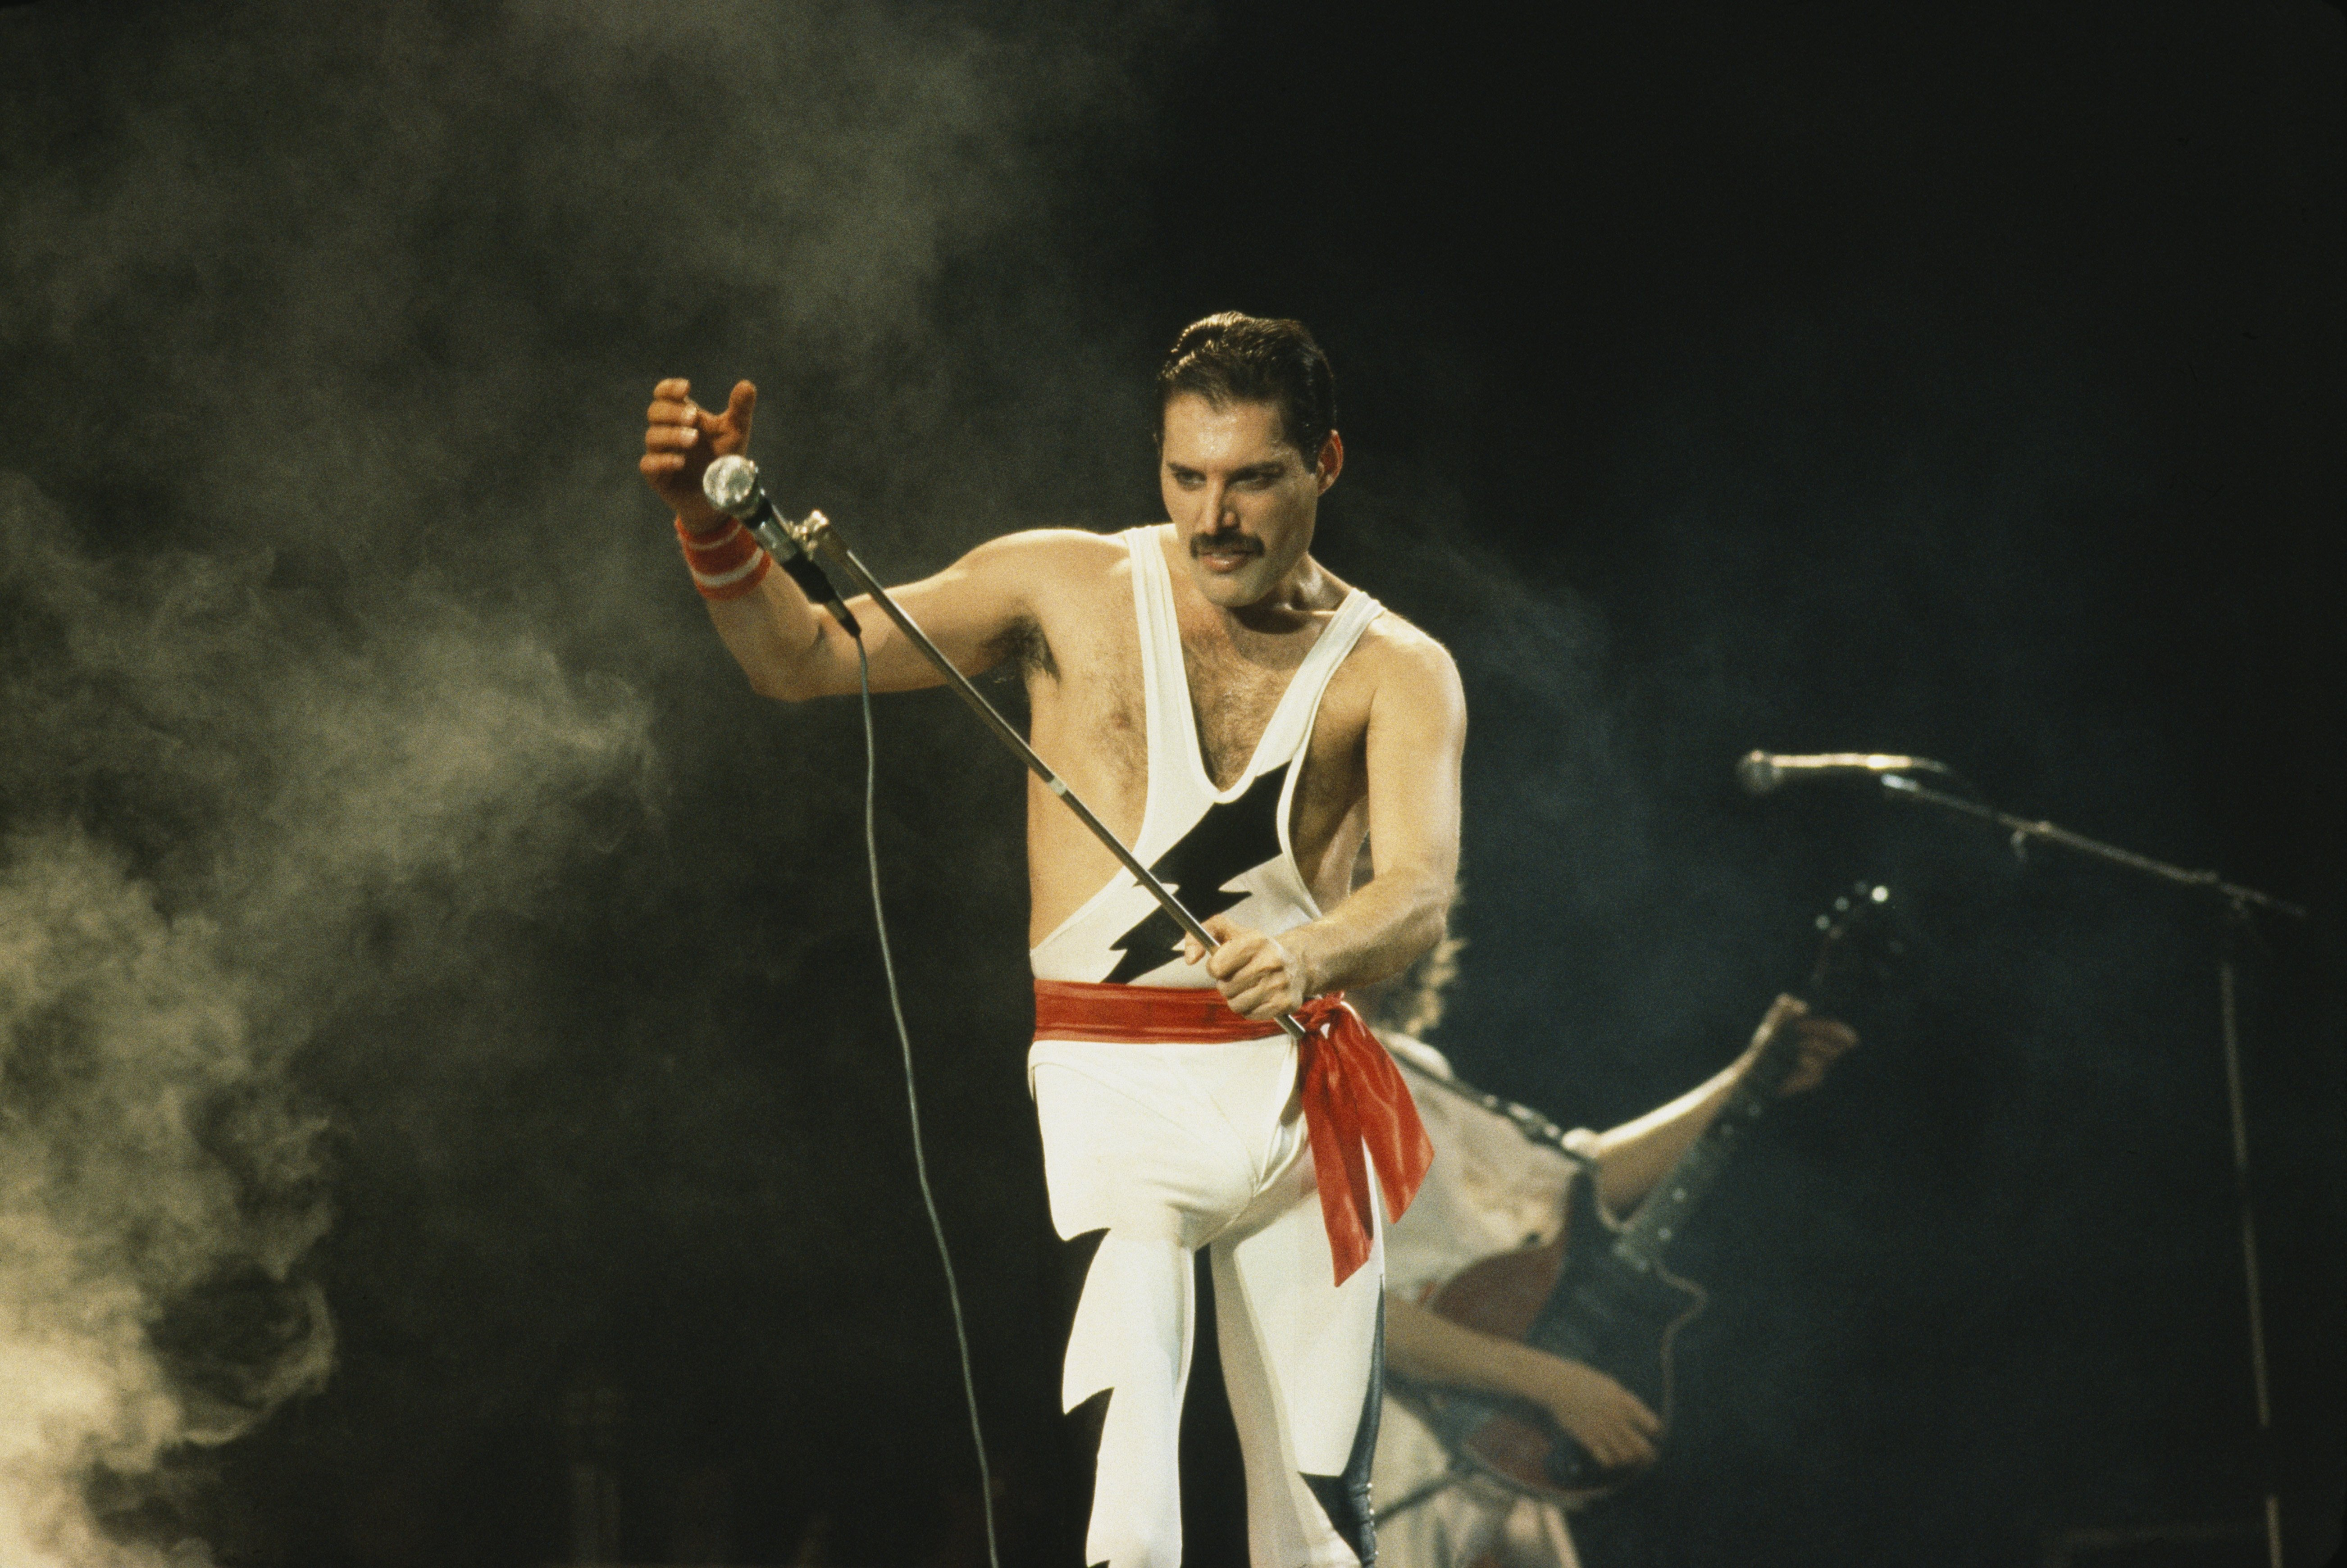 Freddie Mercury performing on stage with British rock group Queen, 1985. | Photo: GettyImages